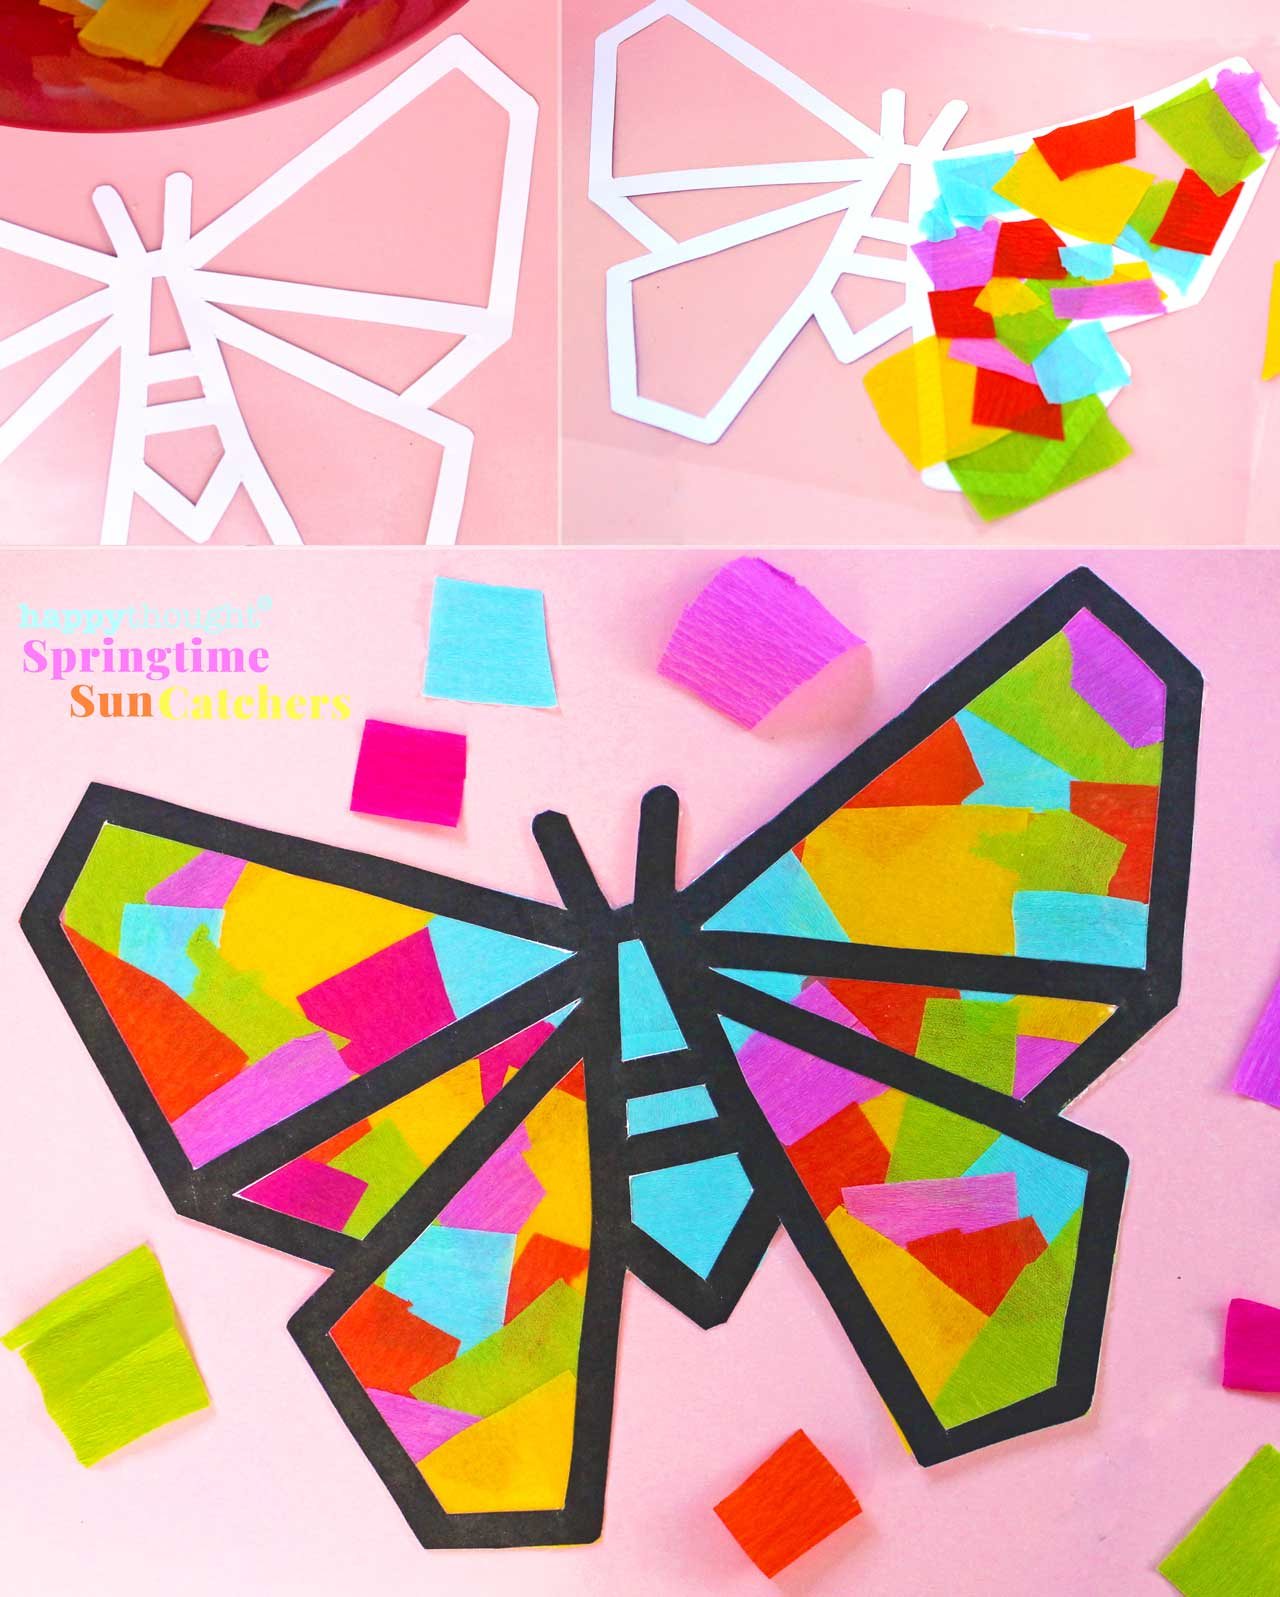 Springtime Sun catcher butterfly design step-by-step photo instructions and template